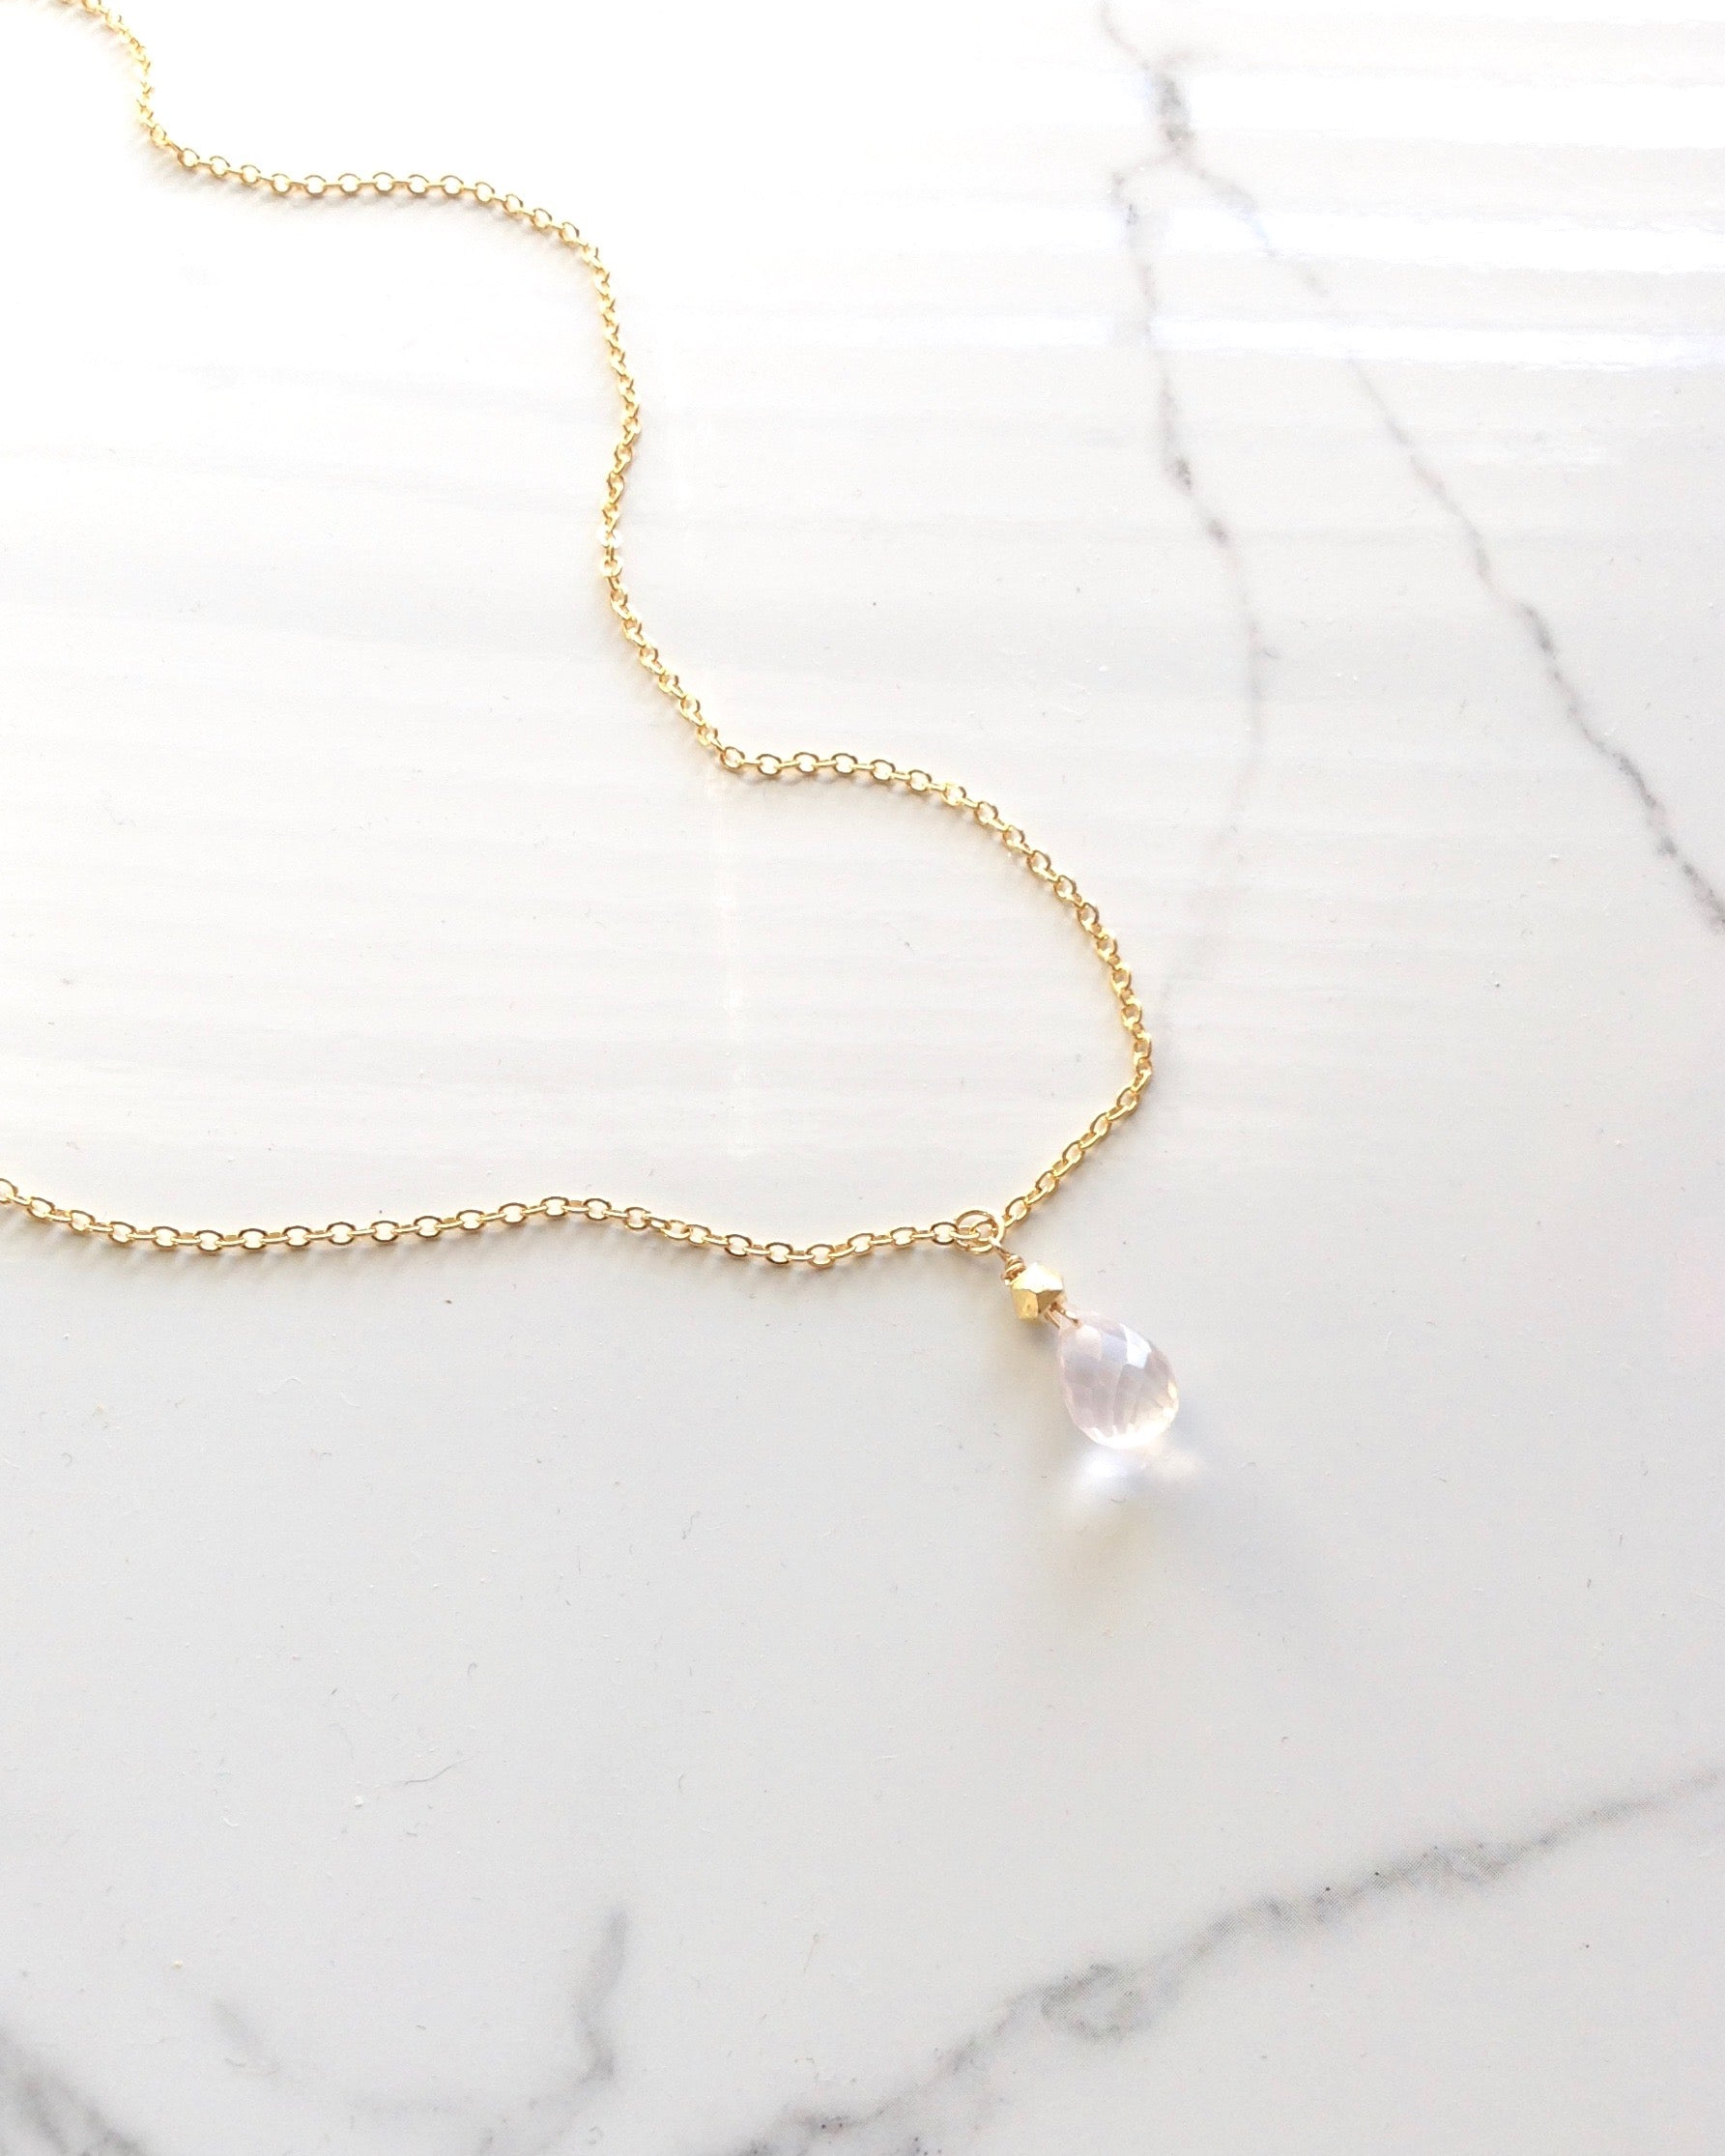 Rose Quartz Encouragement Necklace Gift | Meaningful Necklace Gift | IB Jewelry